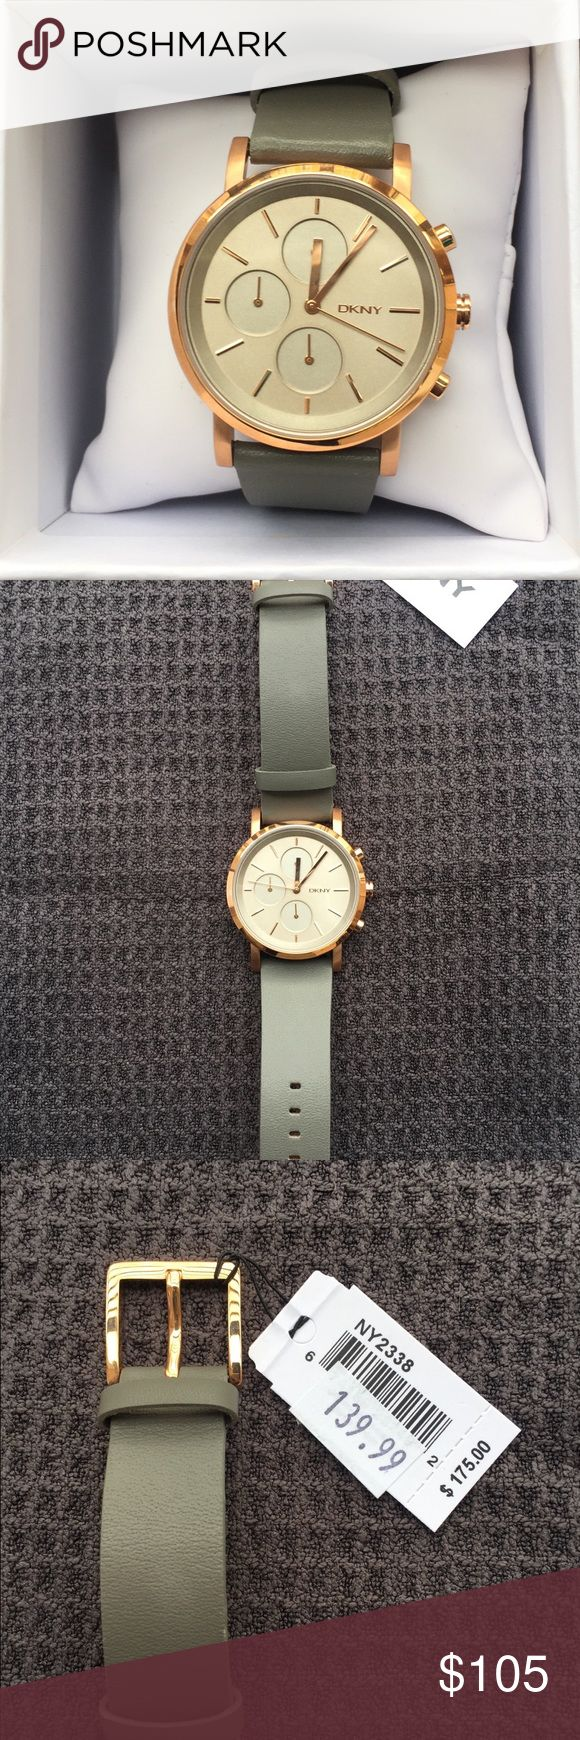 Beautiful DKNY Women's Watch NWT green watch with gold accents. The gold actually looks more rose gold in person! Perfect Christmas gift! Dkny Accessories Watches